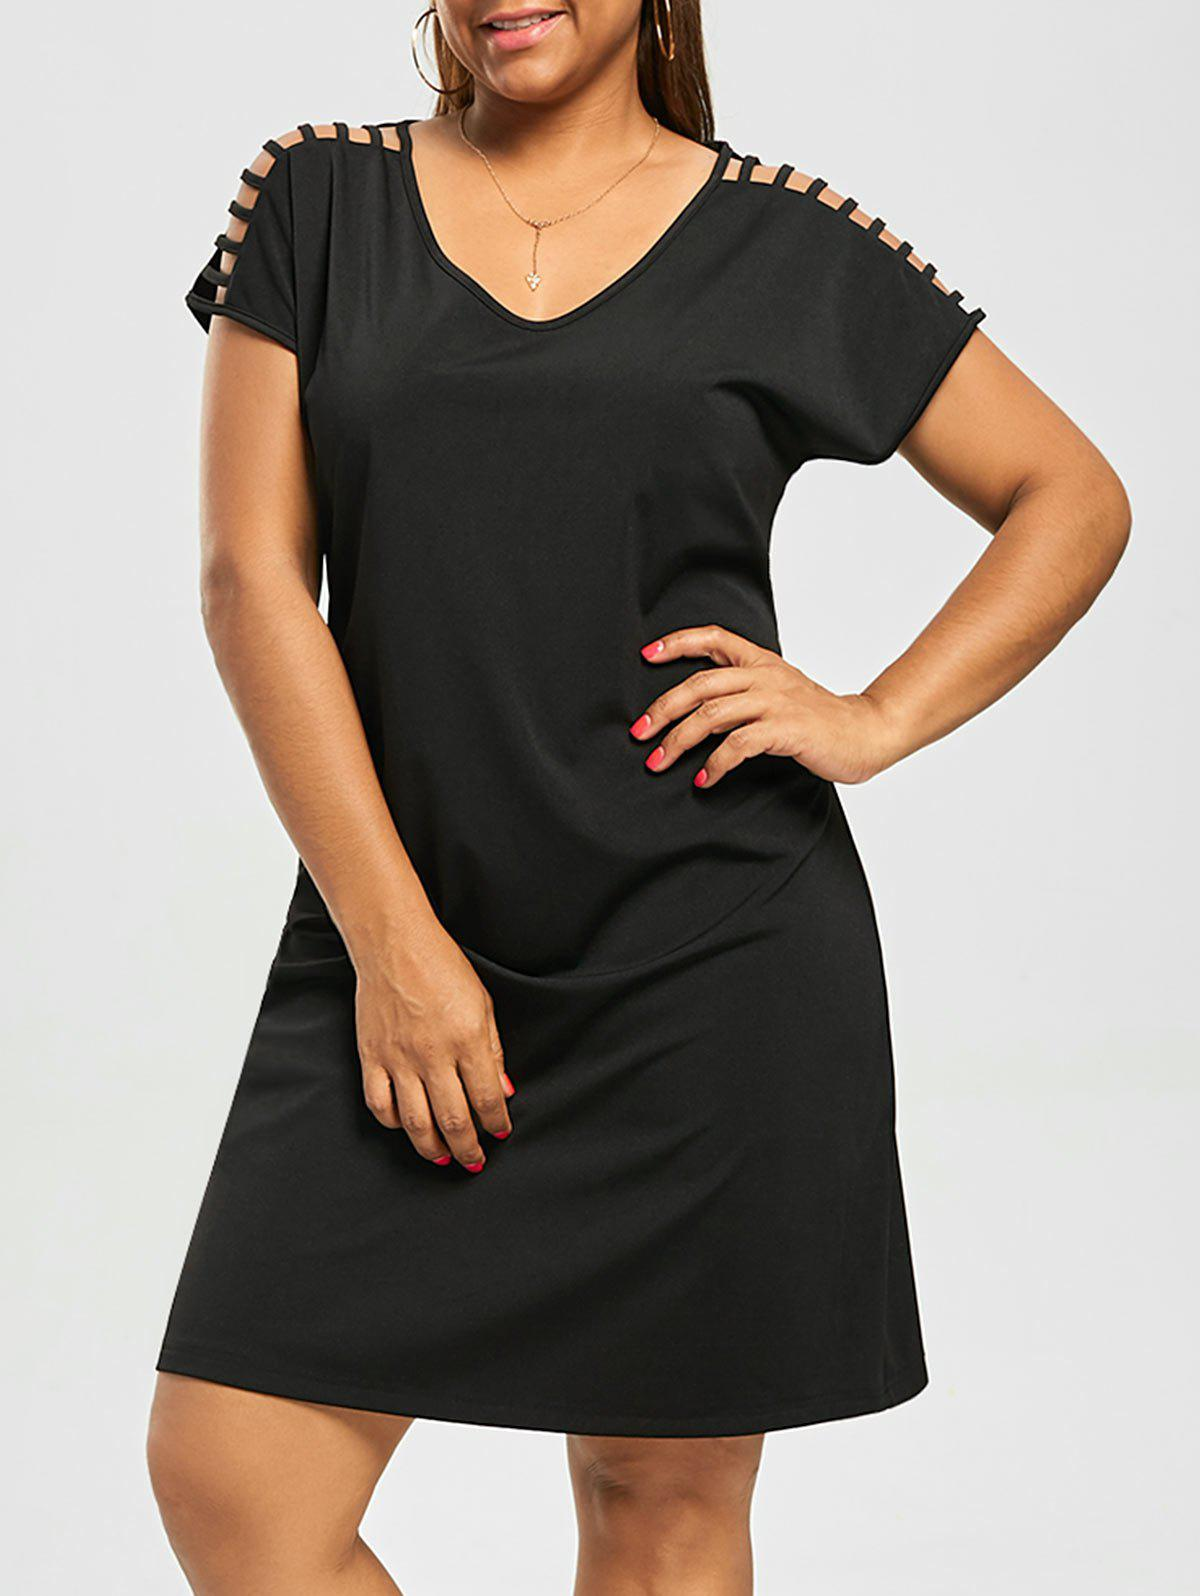 Stripy Short Sleeve Plus Size Tee DressWOMEN<br><br>Size: 4XL; Color: BLACK; Style: Casual; Material: Polyester,Spandex; Silhouette: Straight; Dresses Length: Knee-Length; Neckline: V-Neck; Sleeve Type: Batwing Sleeve; Sleeve Length: Short Sleeves; Waist: Natural; Embellishment: Hollow Out; Pattern Type: Solid Color; Elasticity: Elastic; With Belt: No; Season: Summer; Weight: 0.3000kg; Package Contents: 1 x Dress;